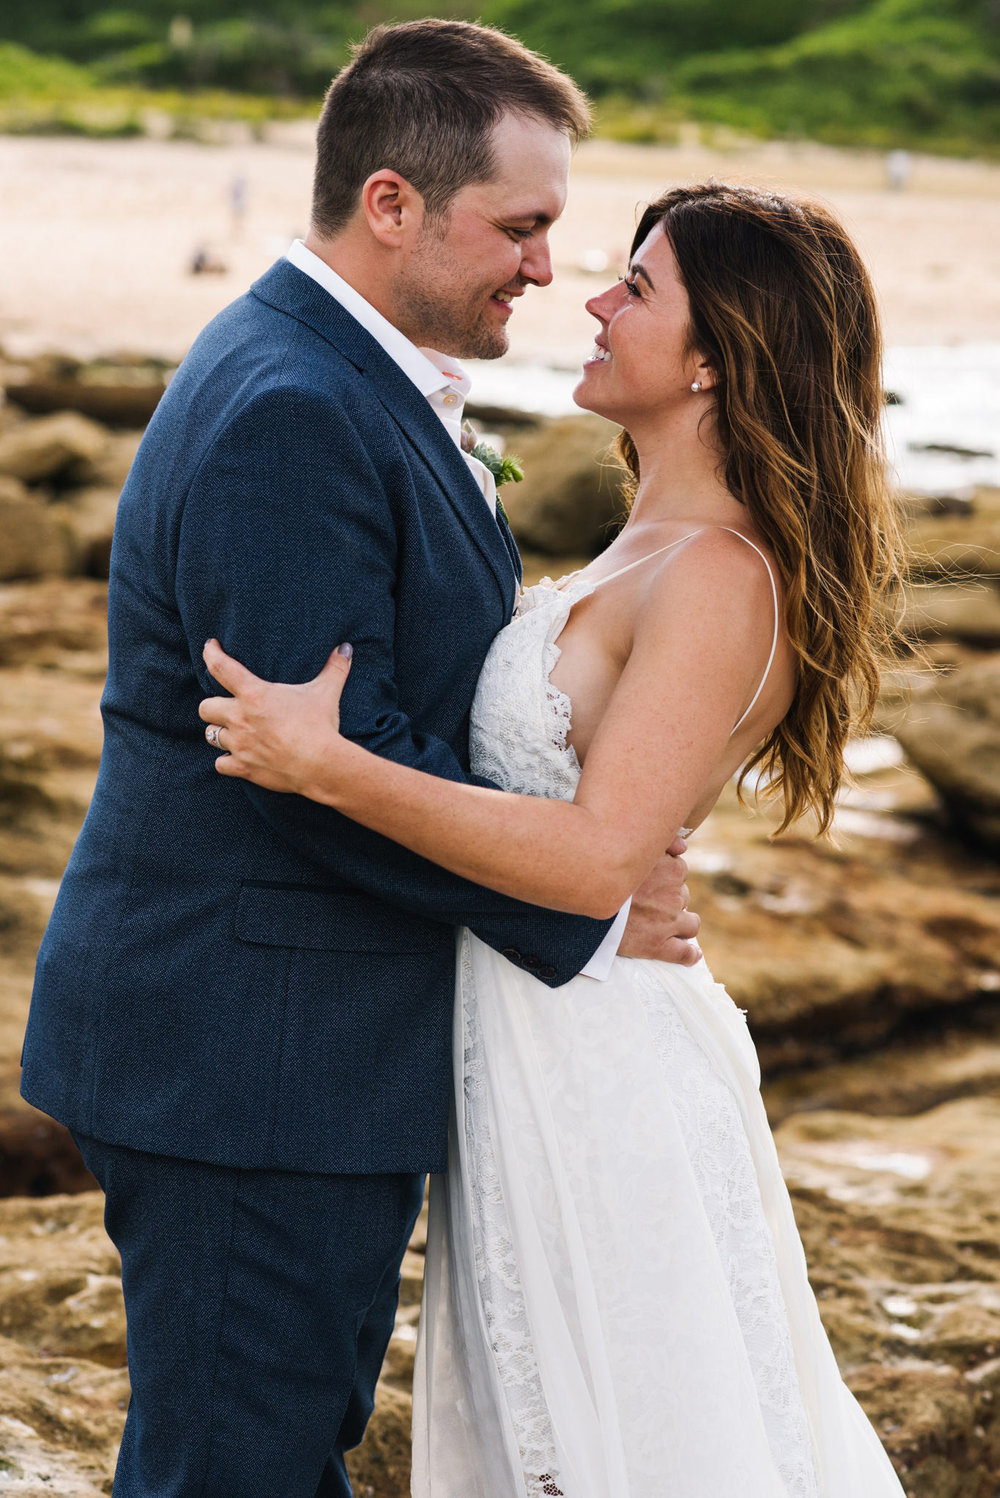 Bride and groom embrace on Sydney beach